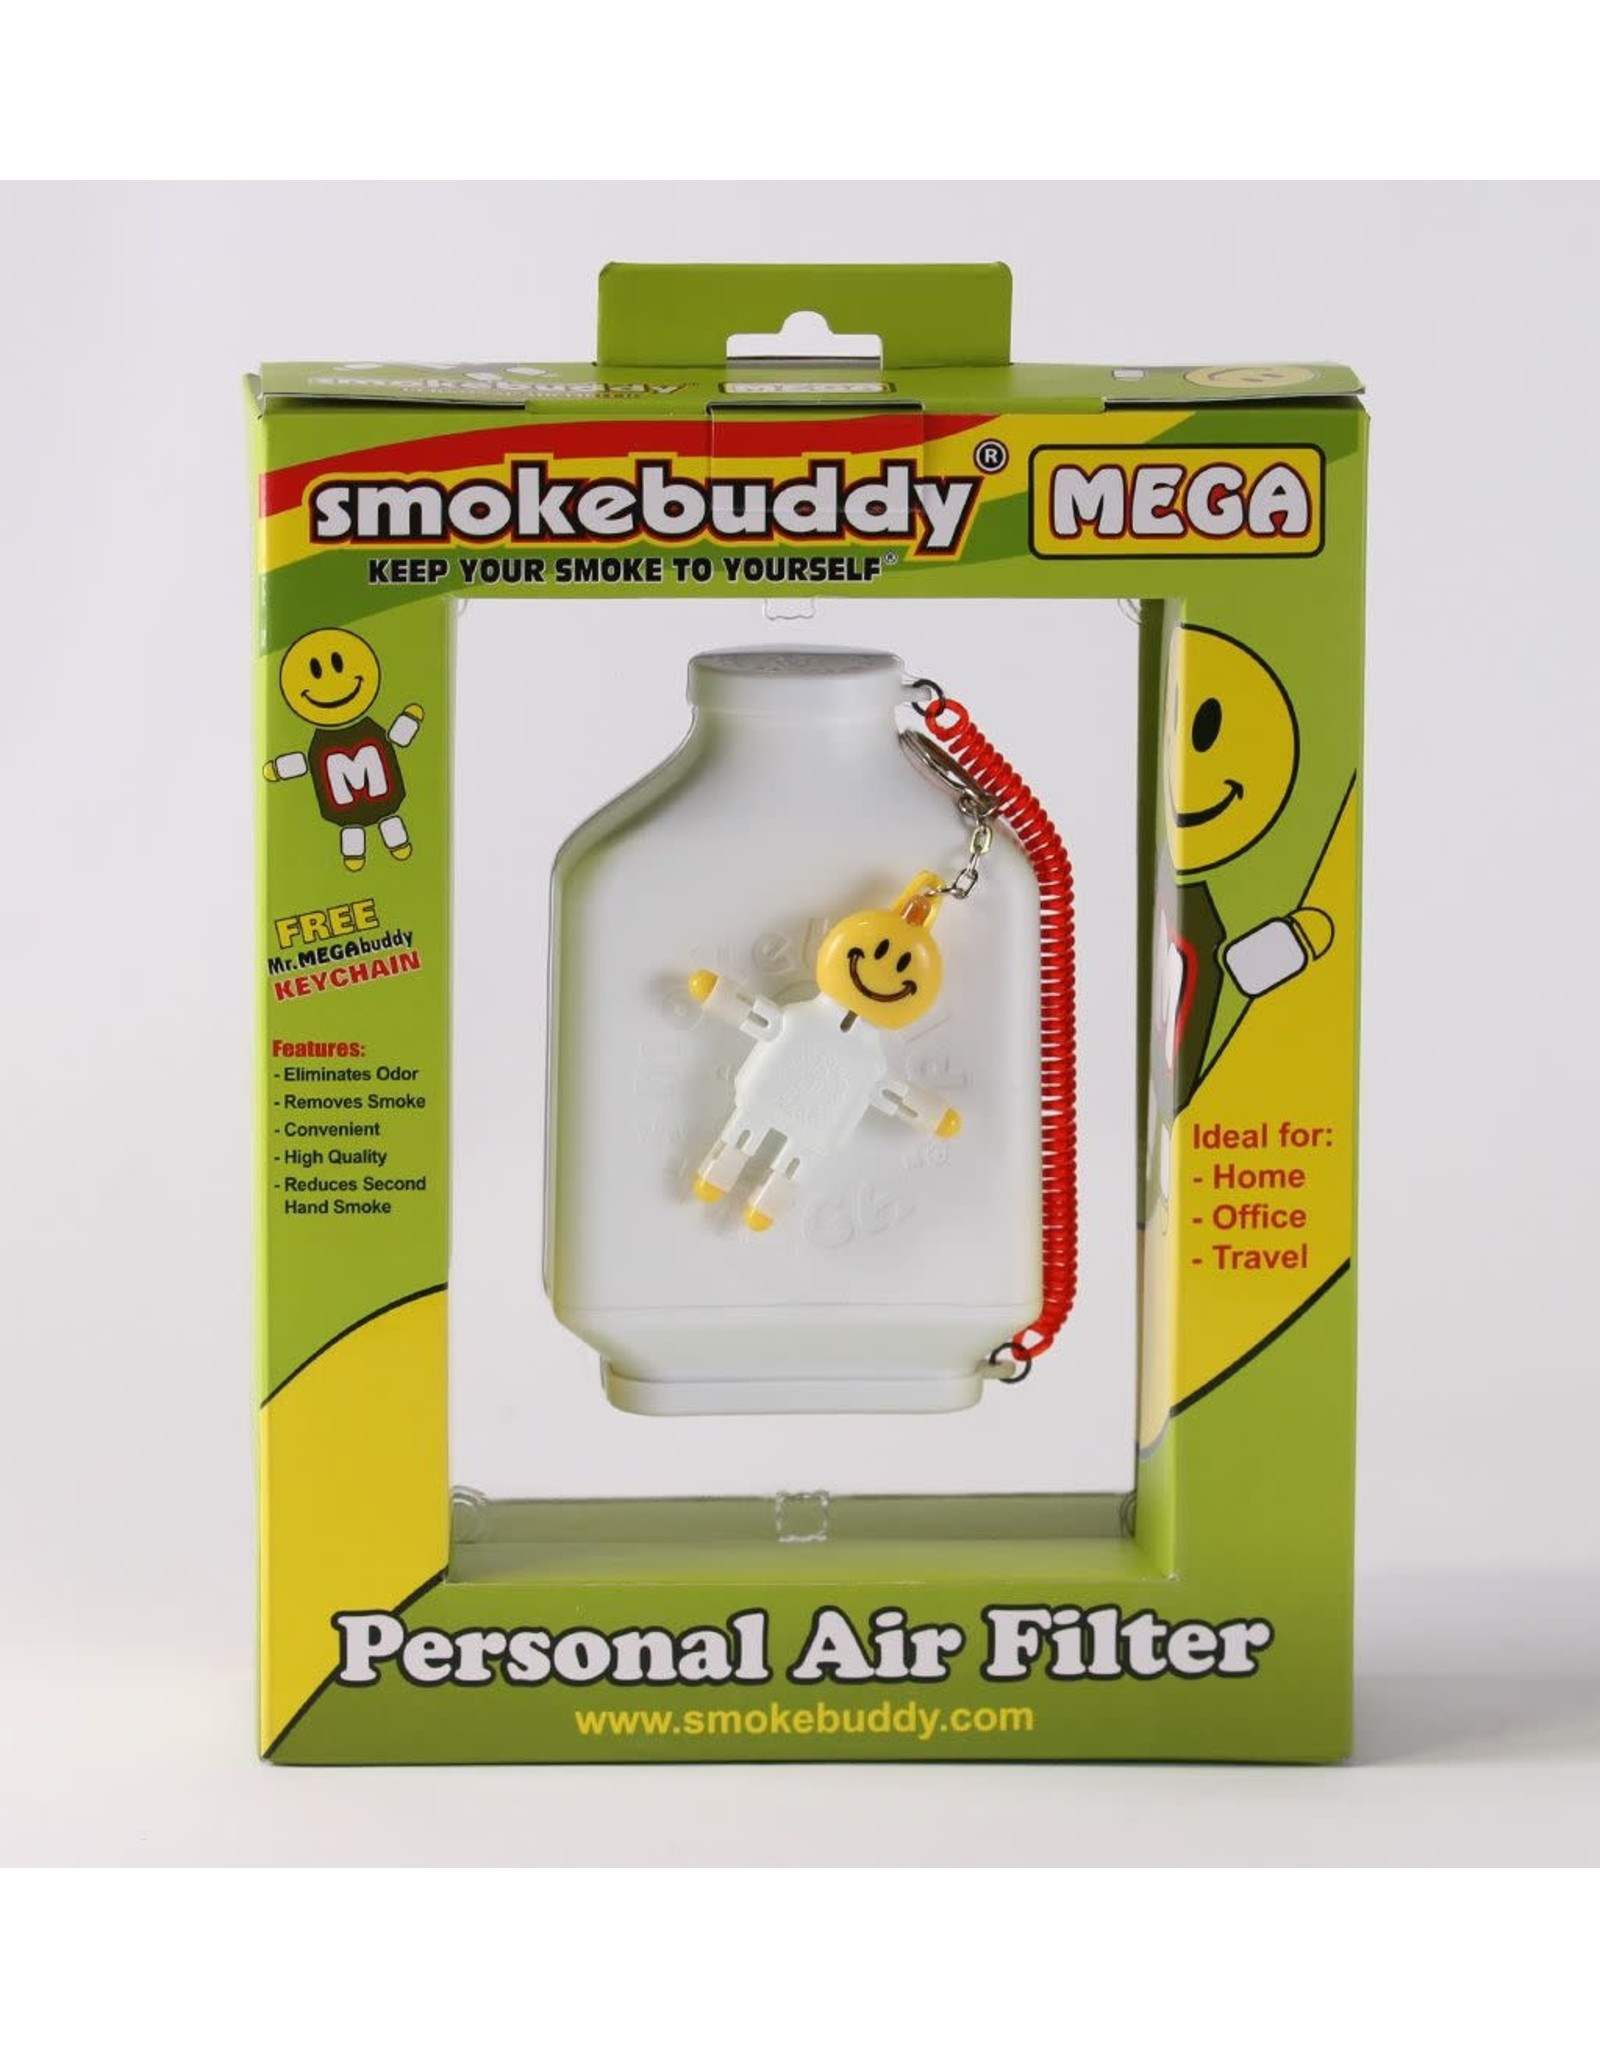 smoke buddy White Smokebuddy MEGA Personal Air Filter